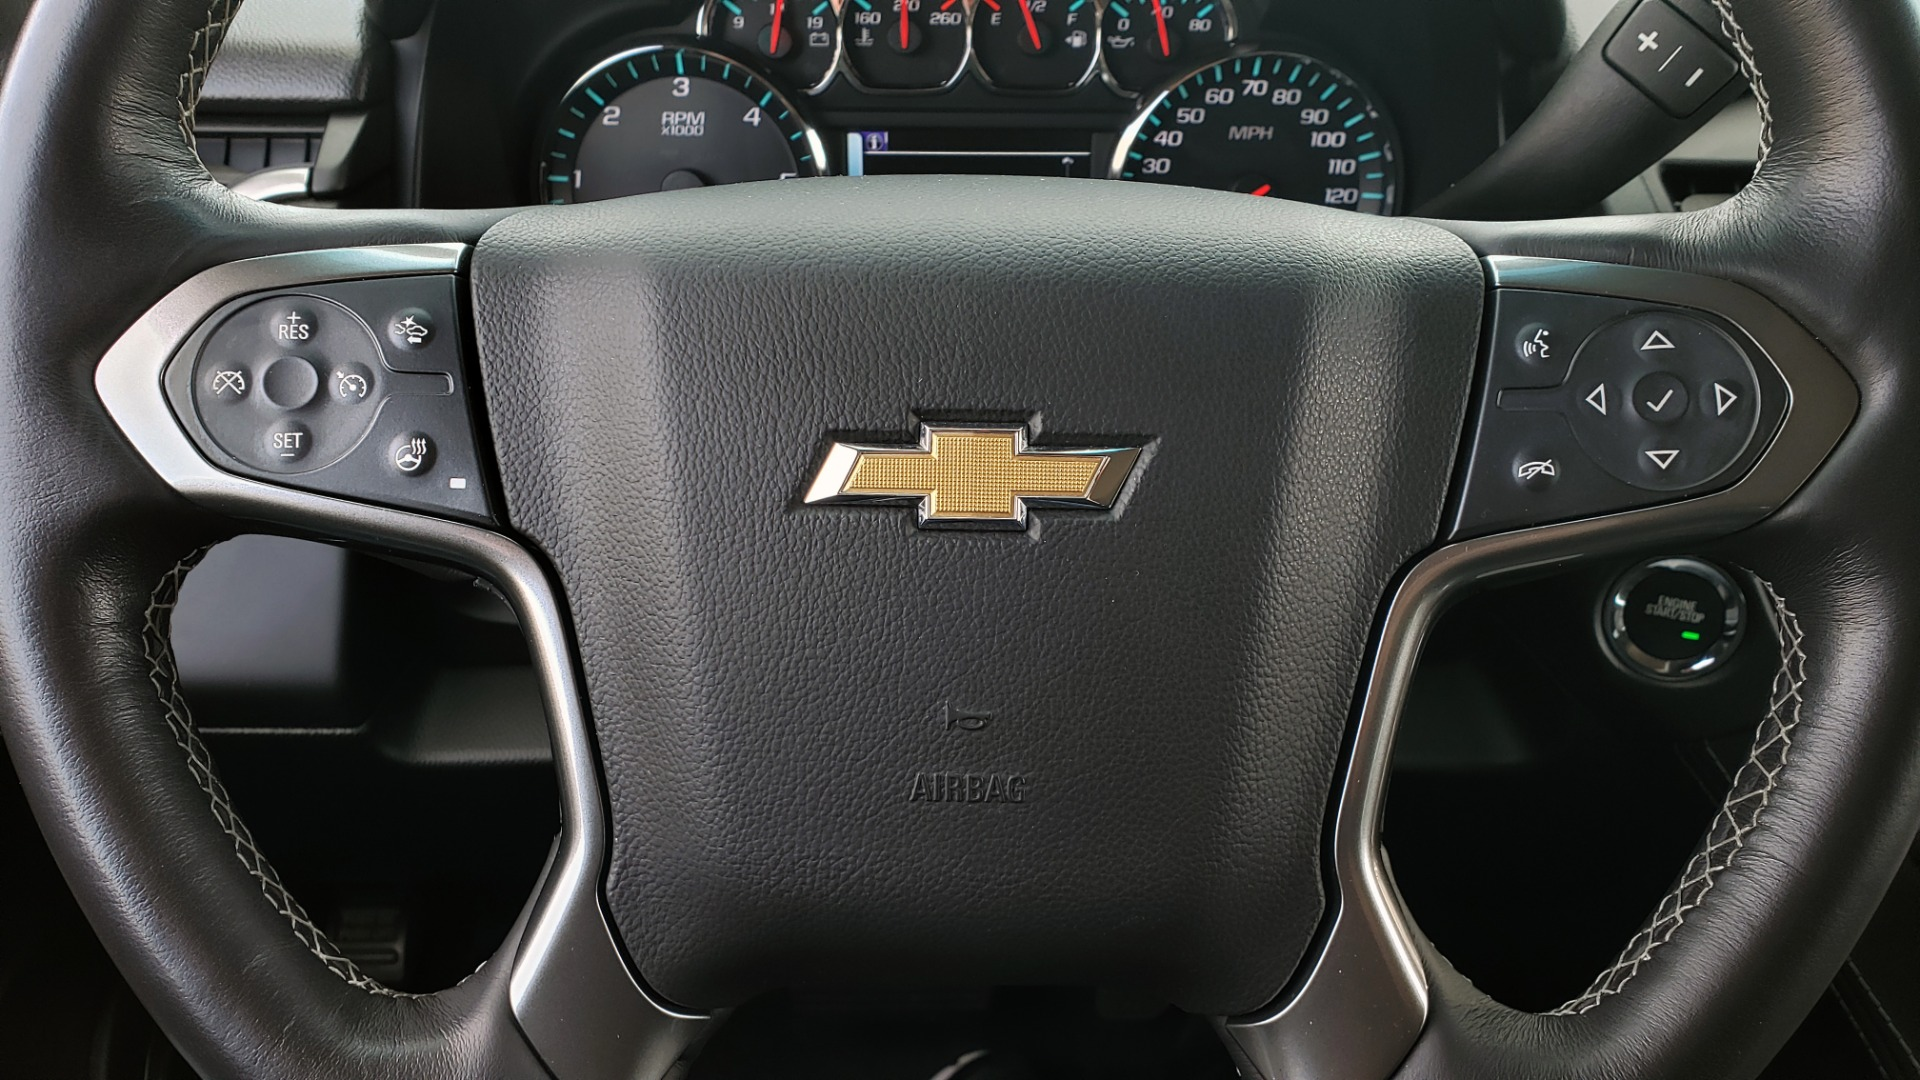 Used 2017 Chevrolet TAHOE 4WD LT / LUXURY PKG / NAV / BOSE / 3-ROW / REARVIEW for sale Sold at Formula Imports in Charlotte NC 28227 42